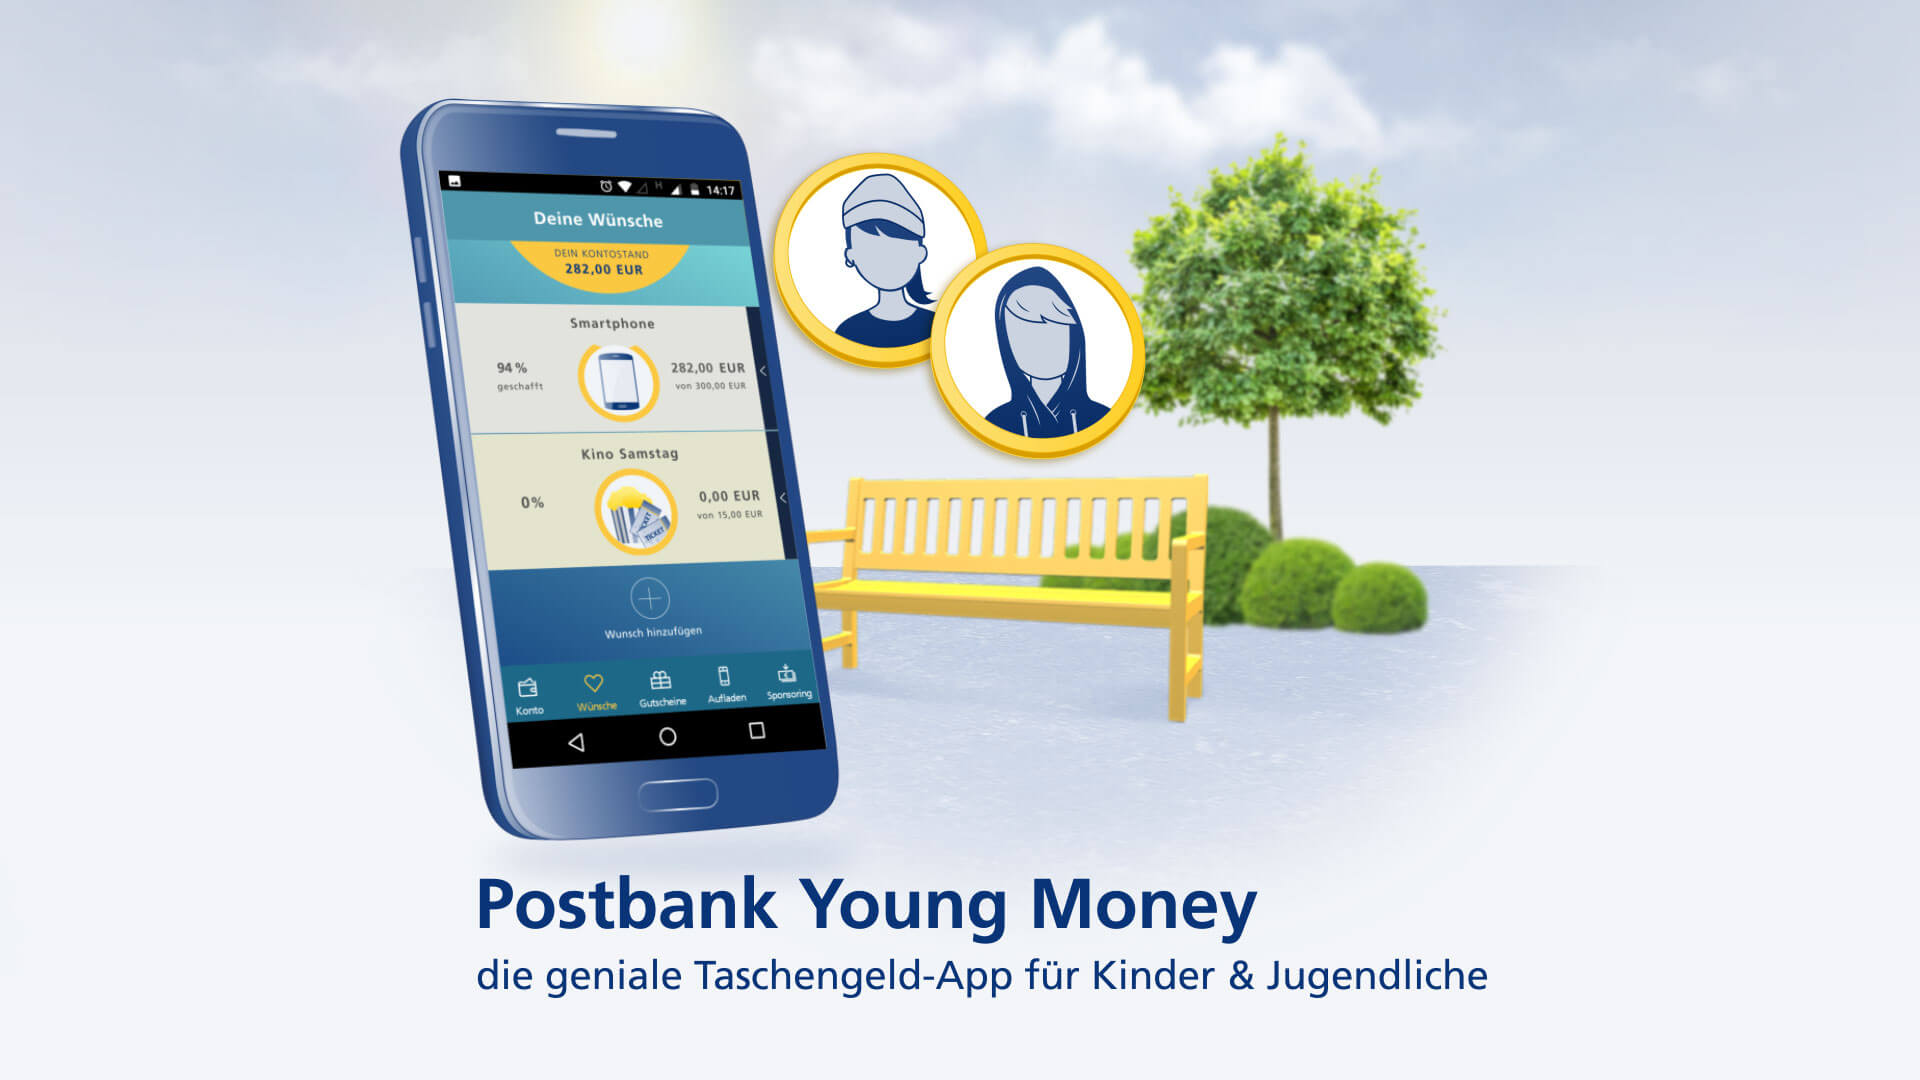 Postbank YOUNG MONEY